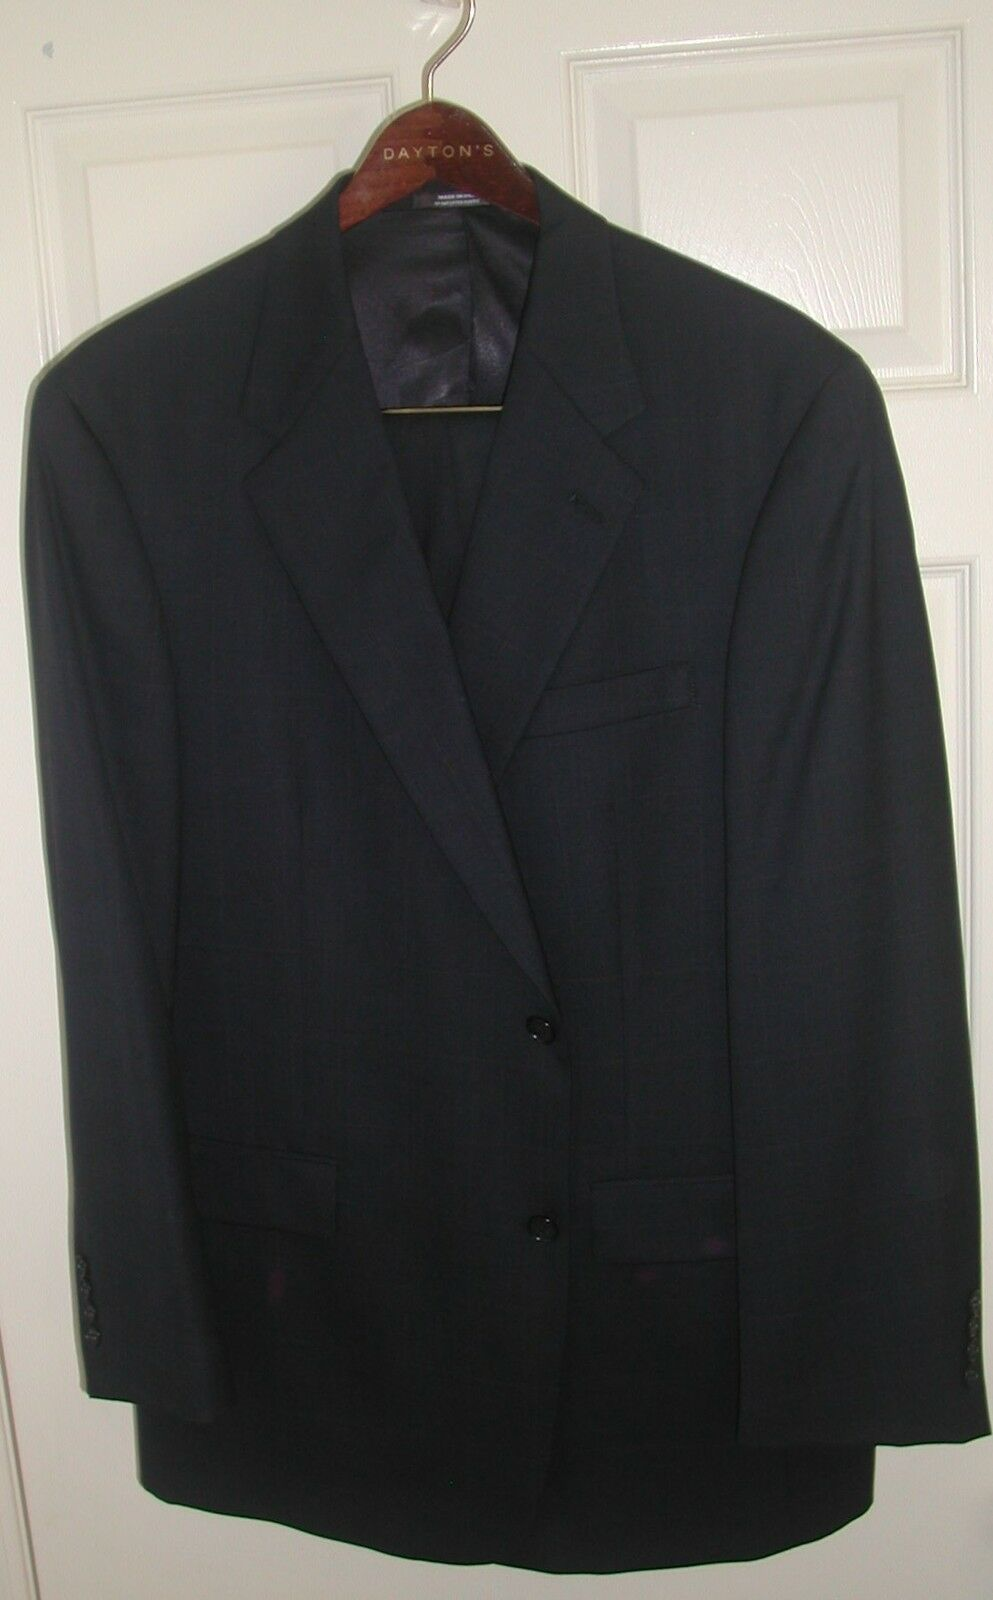 NEW AUSTIN REED NAVY 2 PIECE SUIT, 44R STYLE AND SOPHISTICATION  - FREE SHIPPING